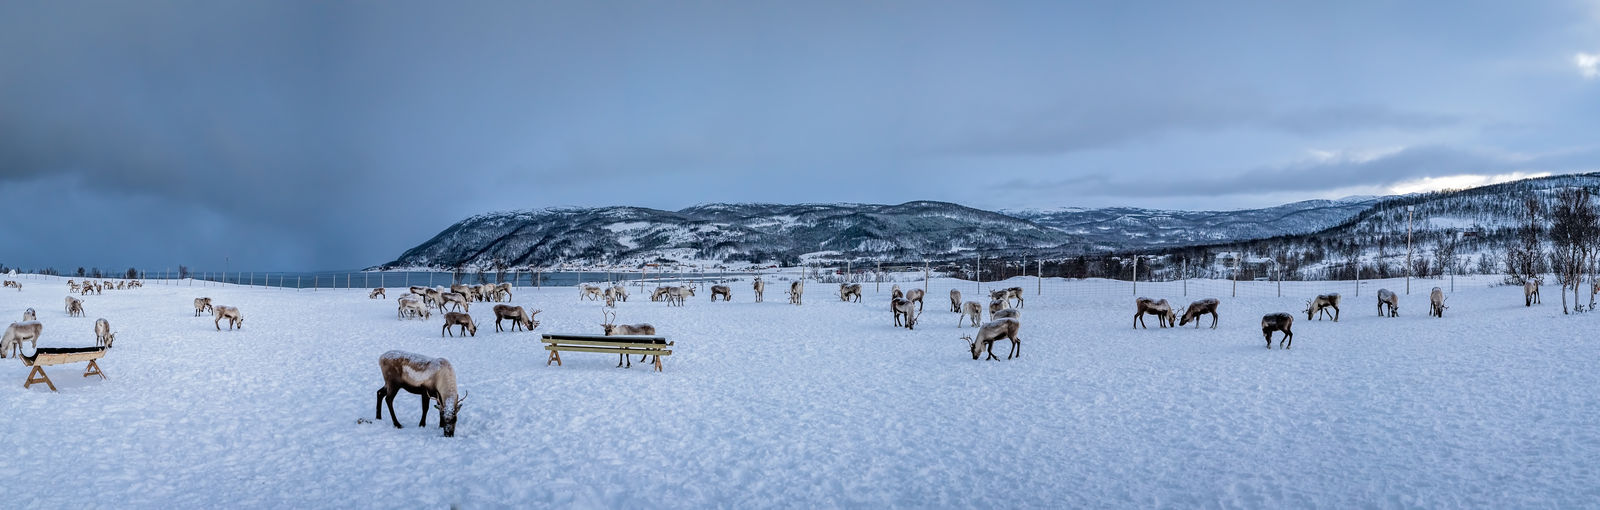 Panoramic view of people on snow covered landscape against sky